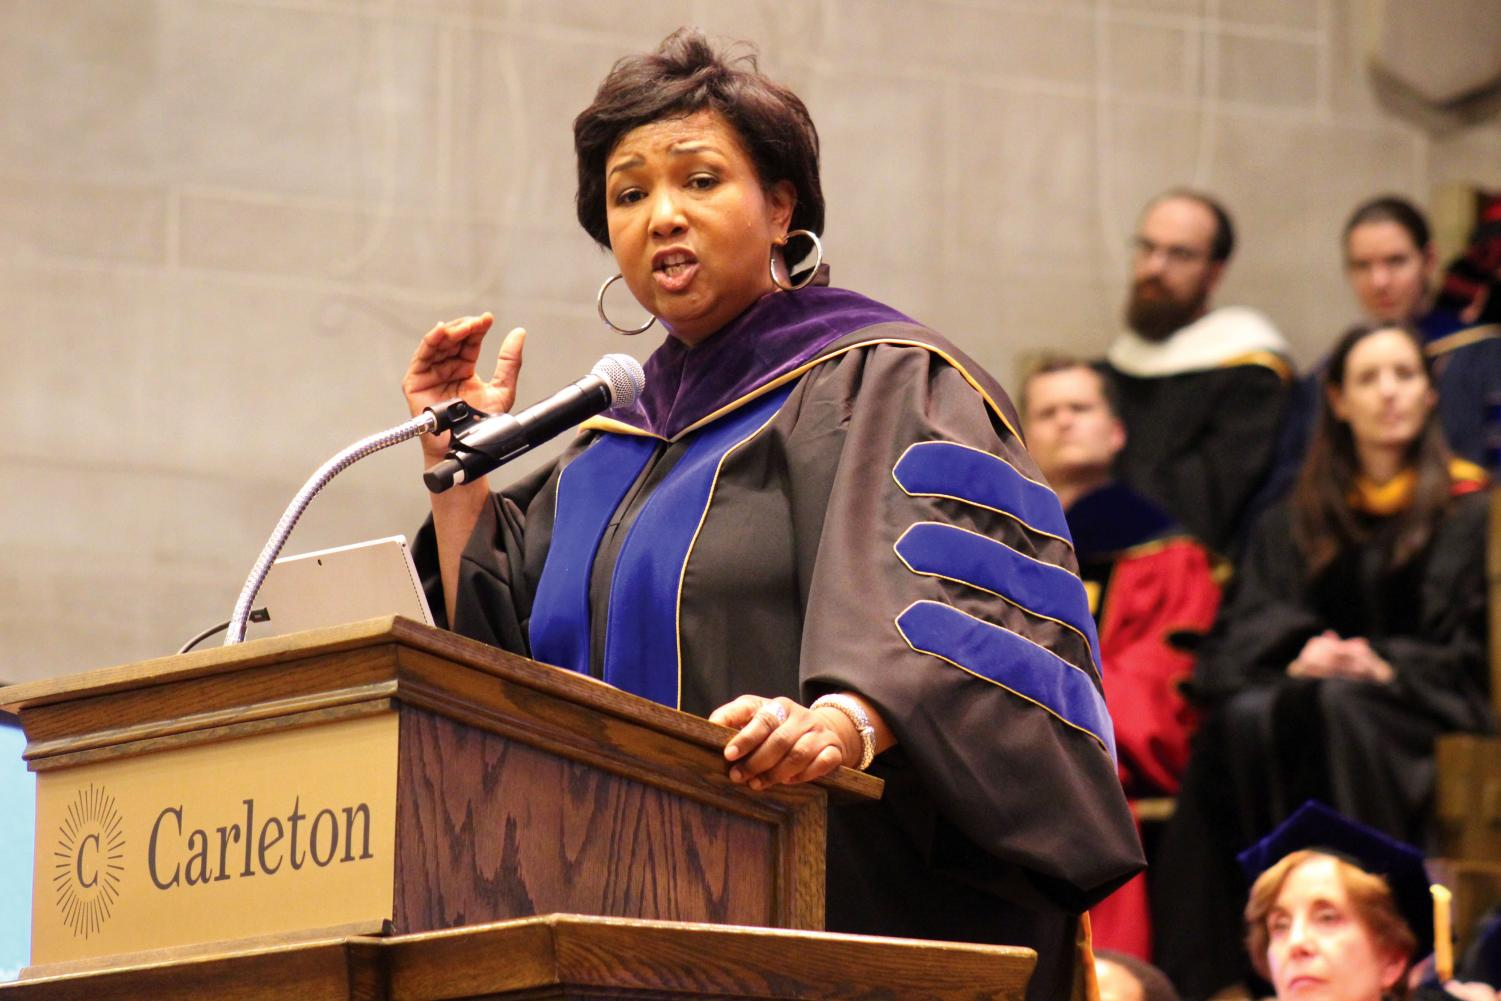 Mae Jemison, the first woman of color to travel to space, speaks at a convocation at Carleton College Oct. 26